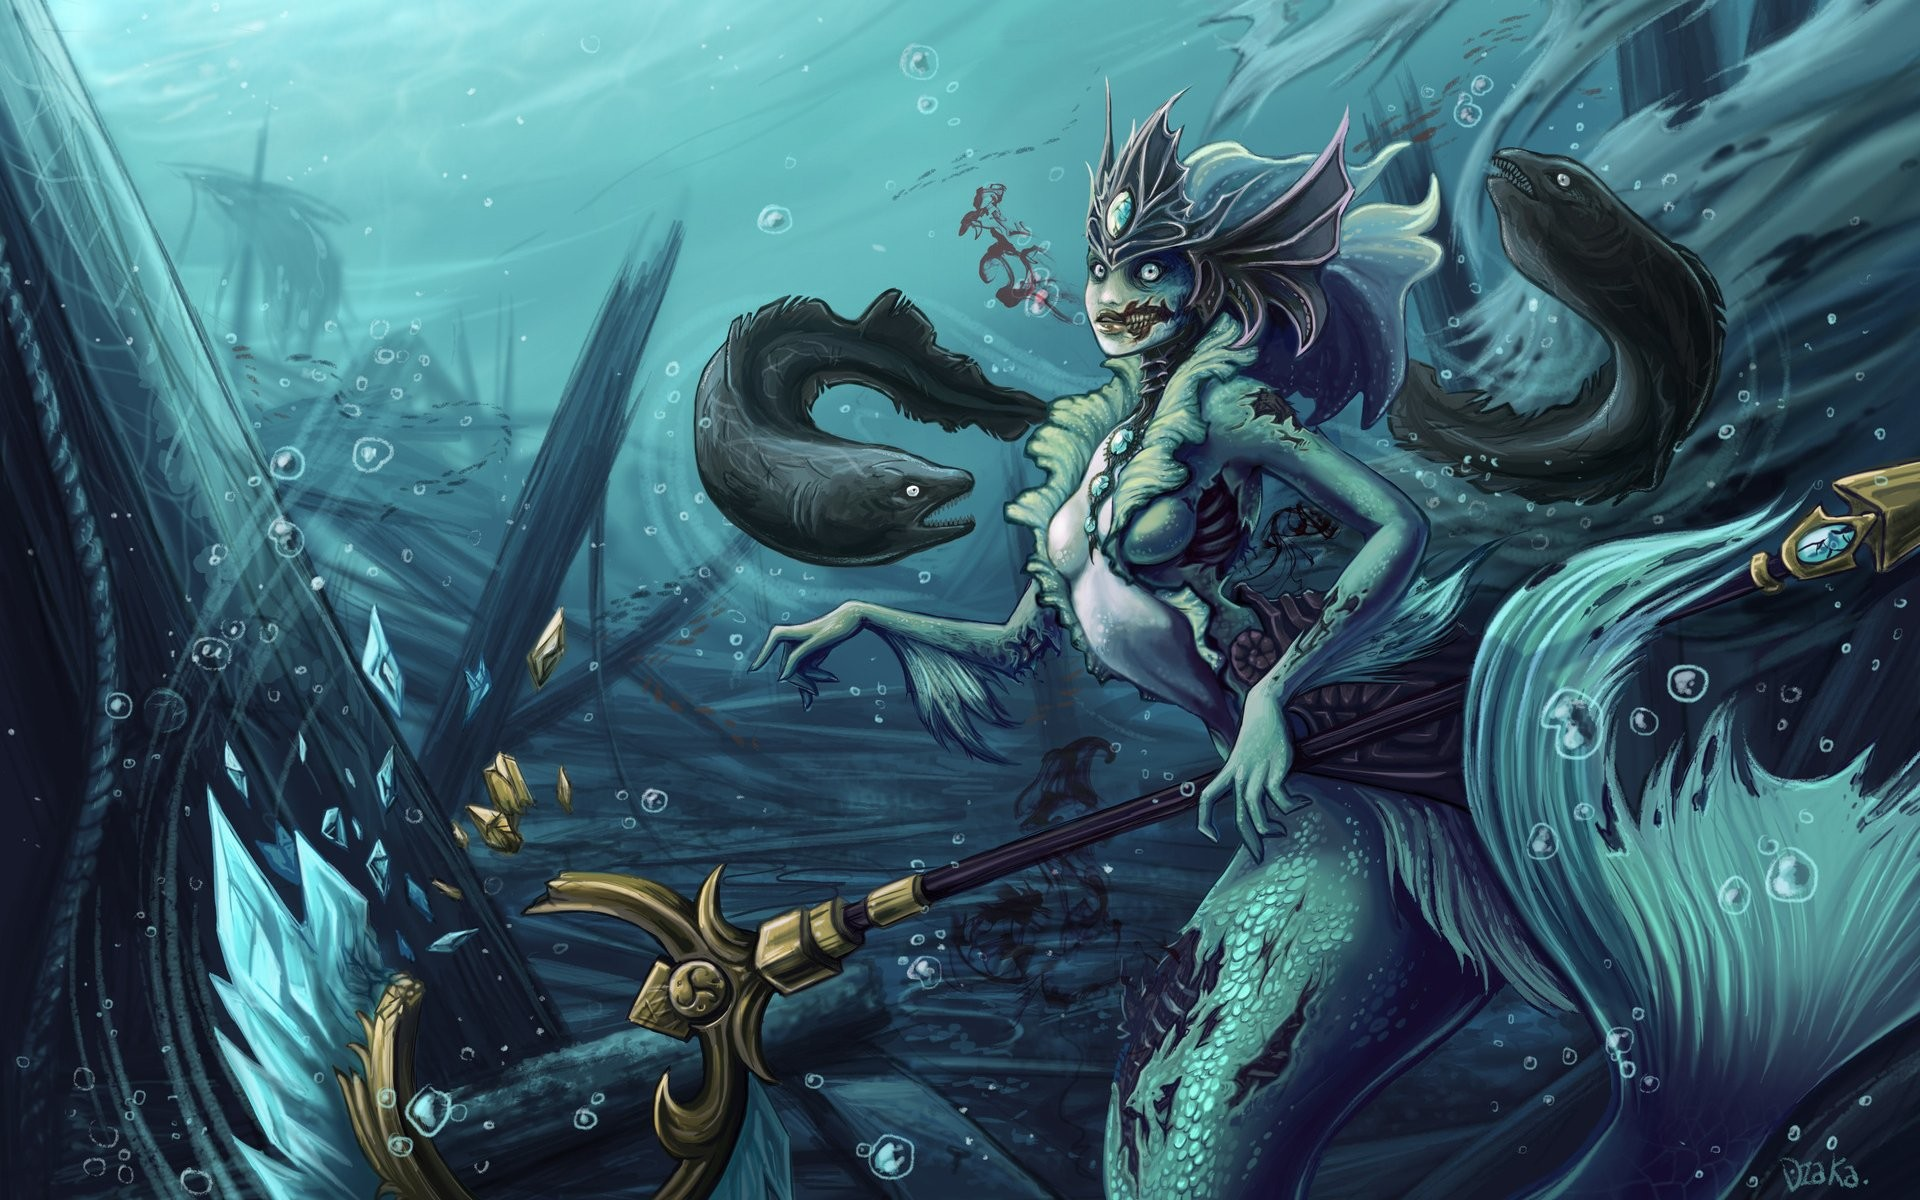 1920x1200 Video Game - League Of Legends Nami (League of Legends) Wallpaper